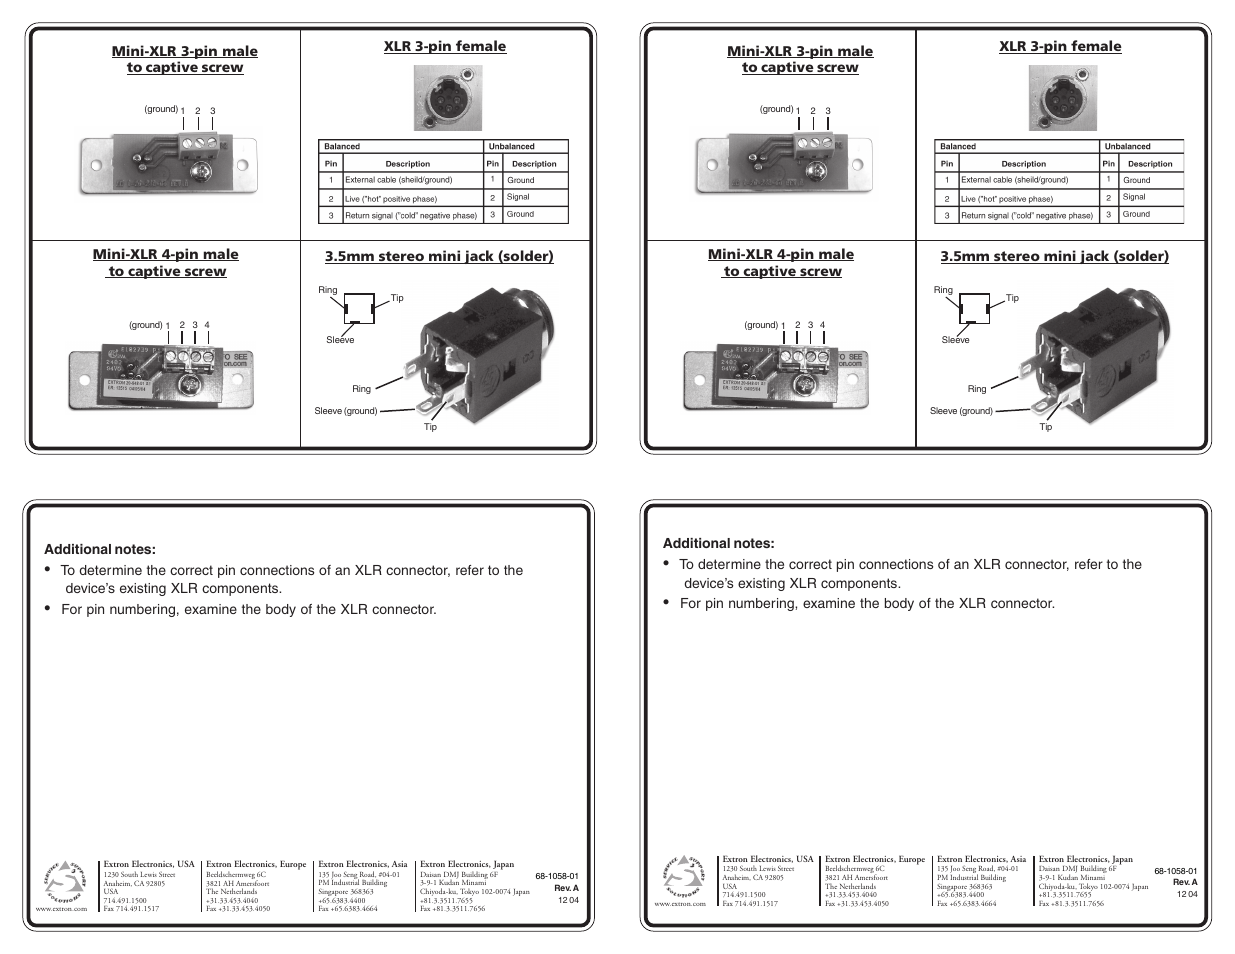 Extron Electronics Aap Wiring Guide 68 1058 01 User Manual 1 Page Diagram Further For Xlr To 4 Stereo Jack